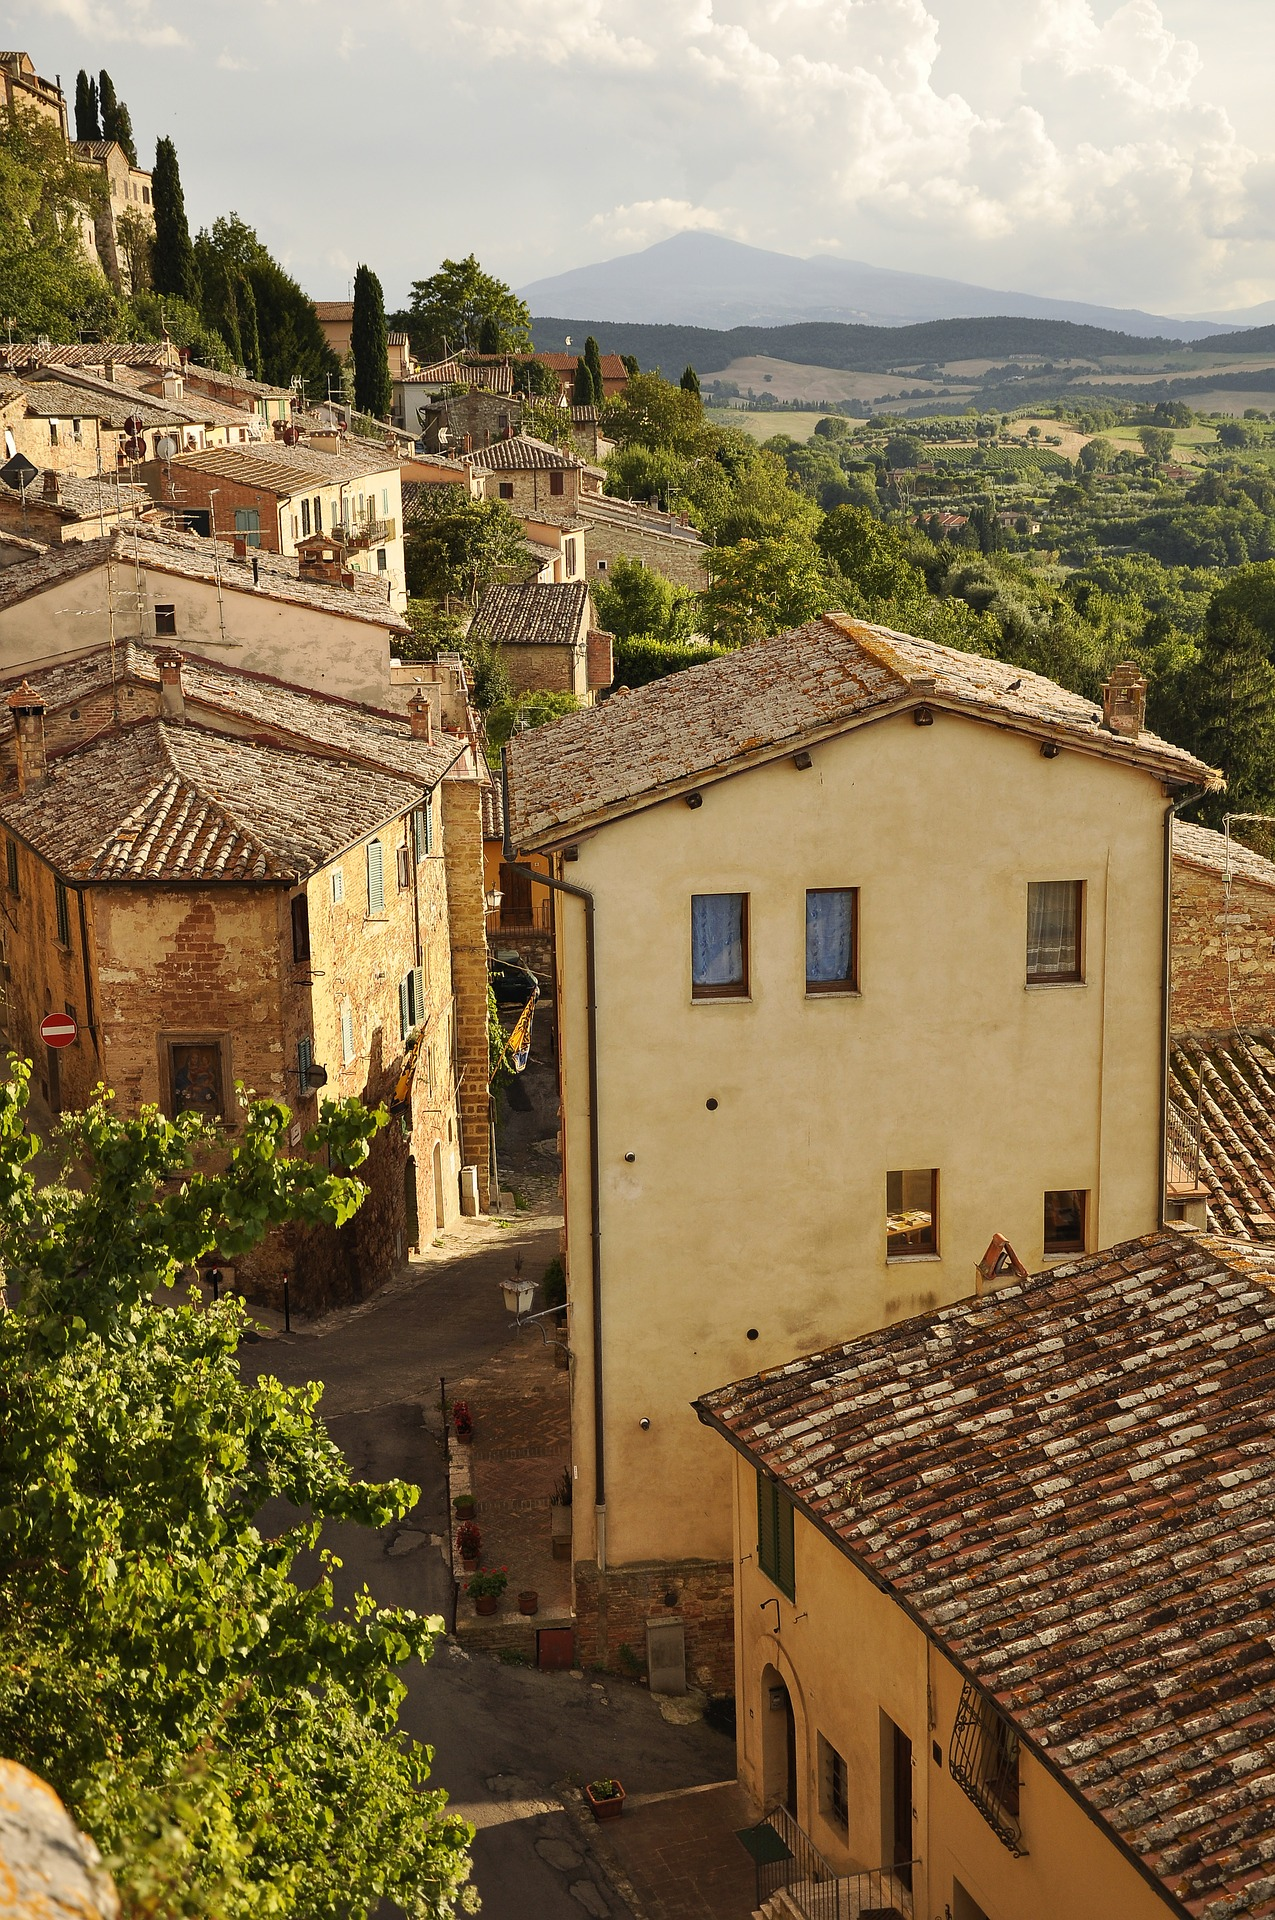 Homes in Tuscany, Italy with landscape in background